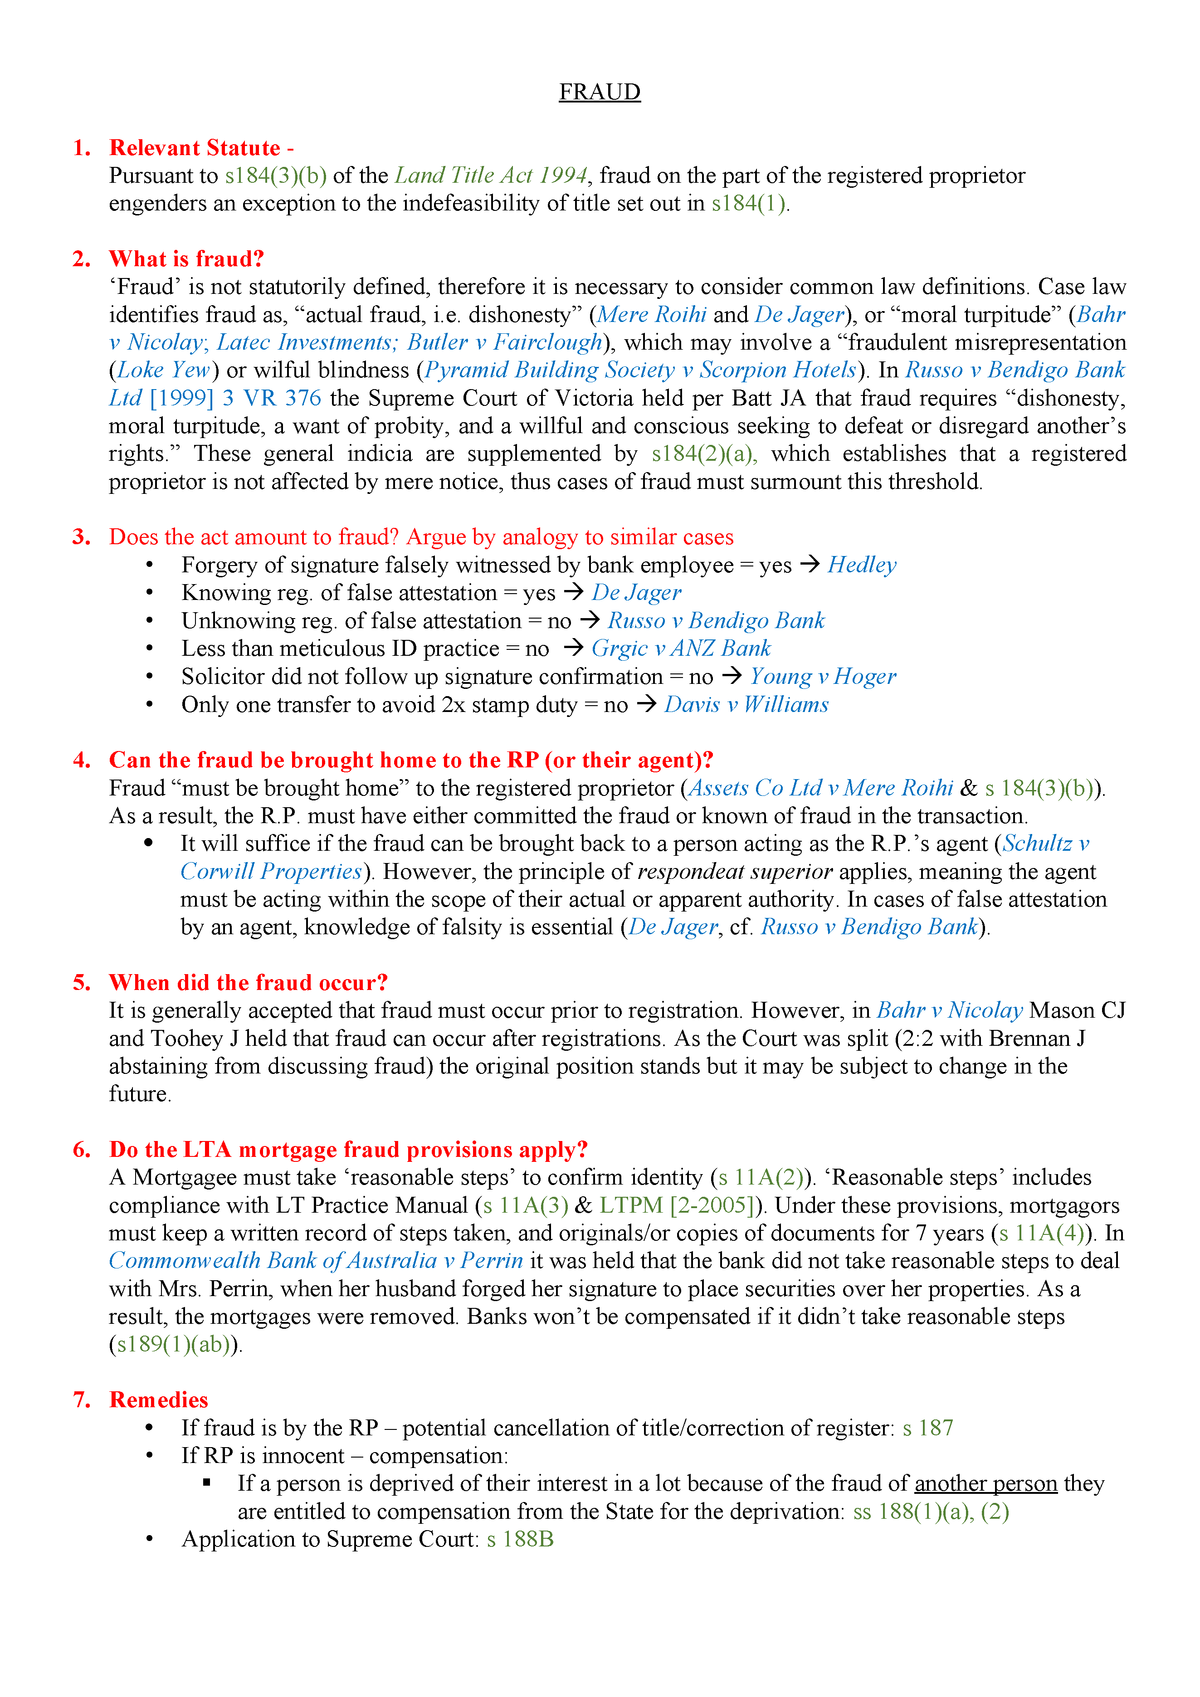 Prop B Cheat Sheets - Summary Law Of Property B - LAWS3112